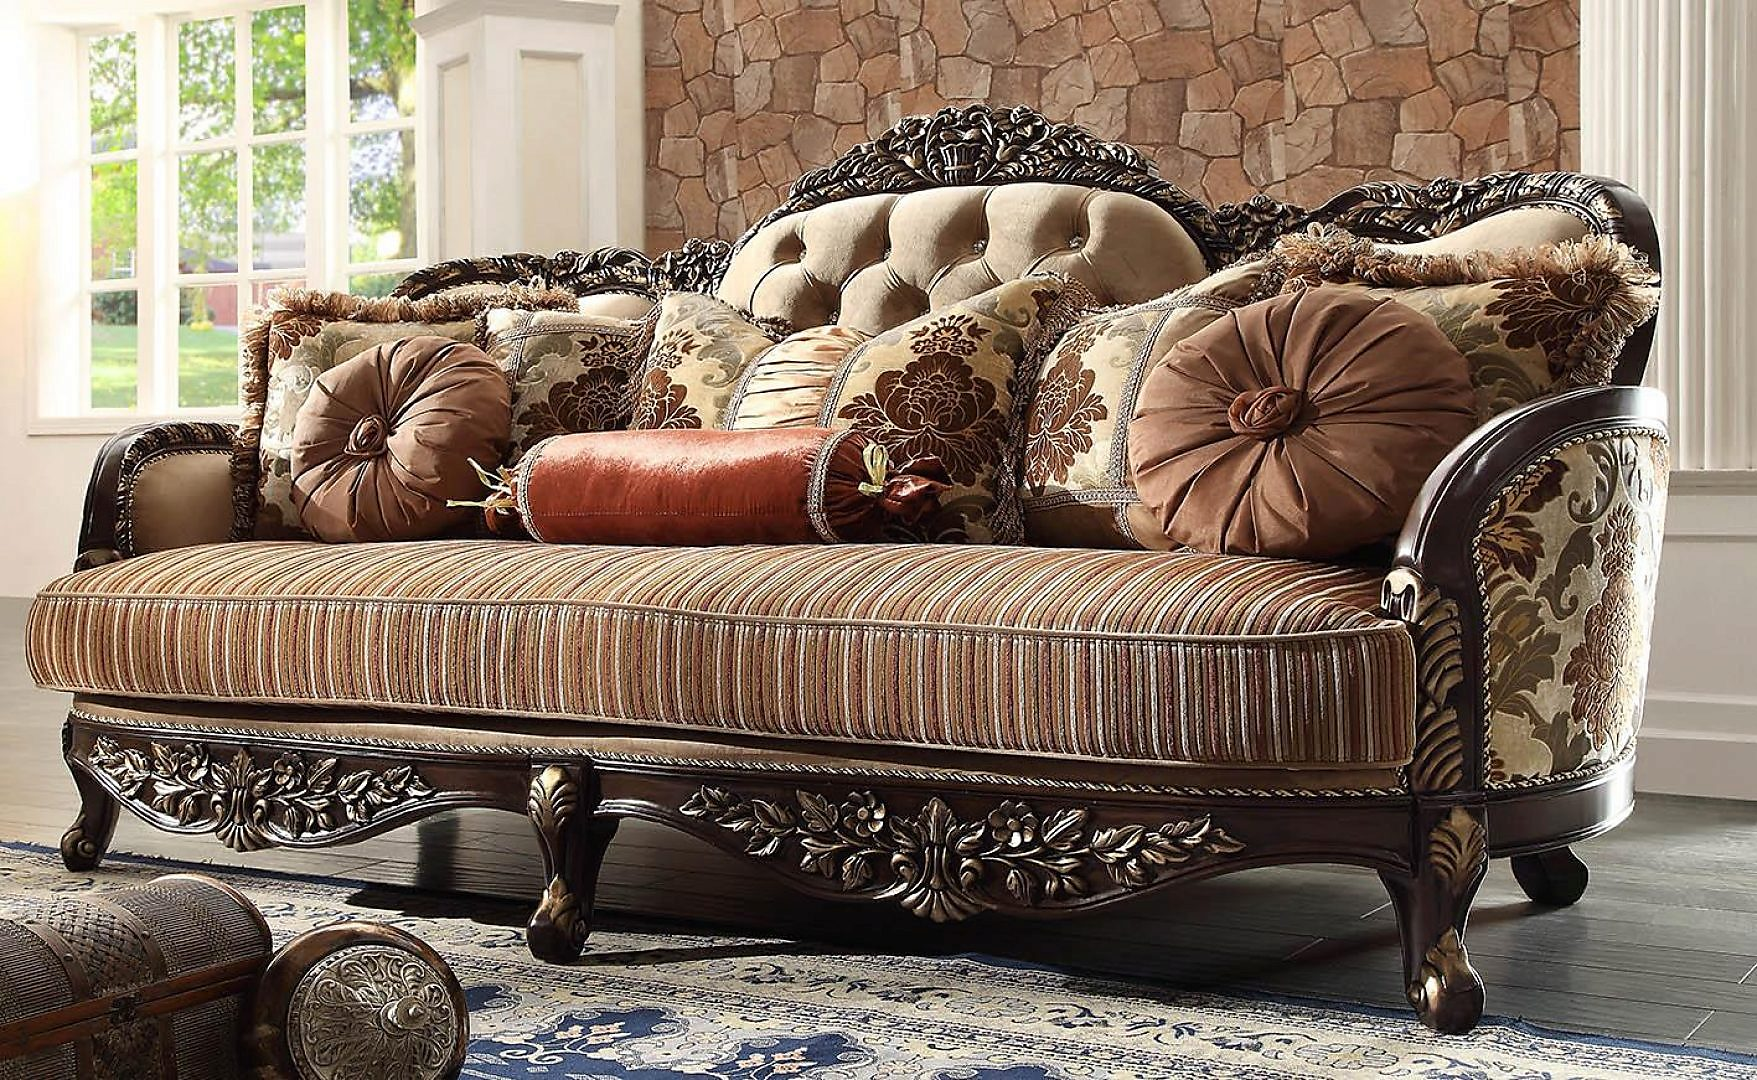 Traditional Carved HD-1976 Sofa and Loveseat Set 2Pcs by Homey Design